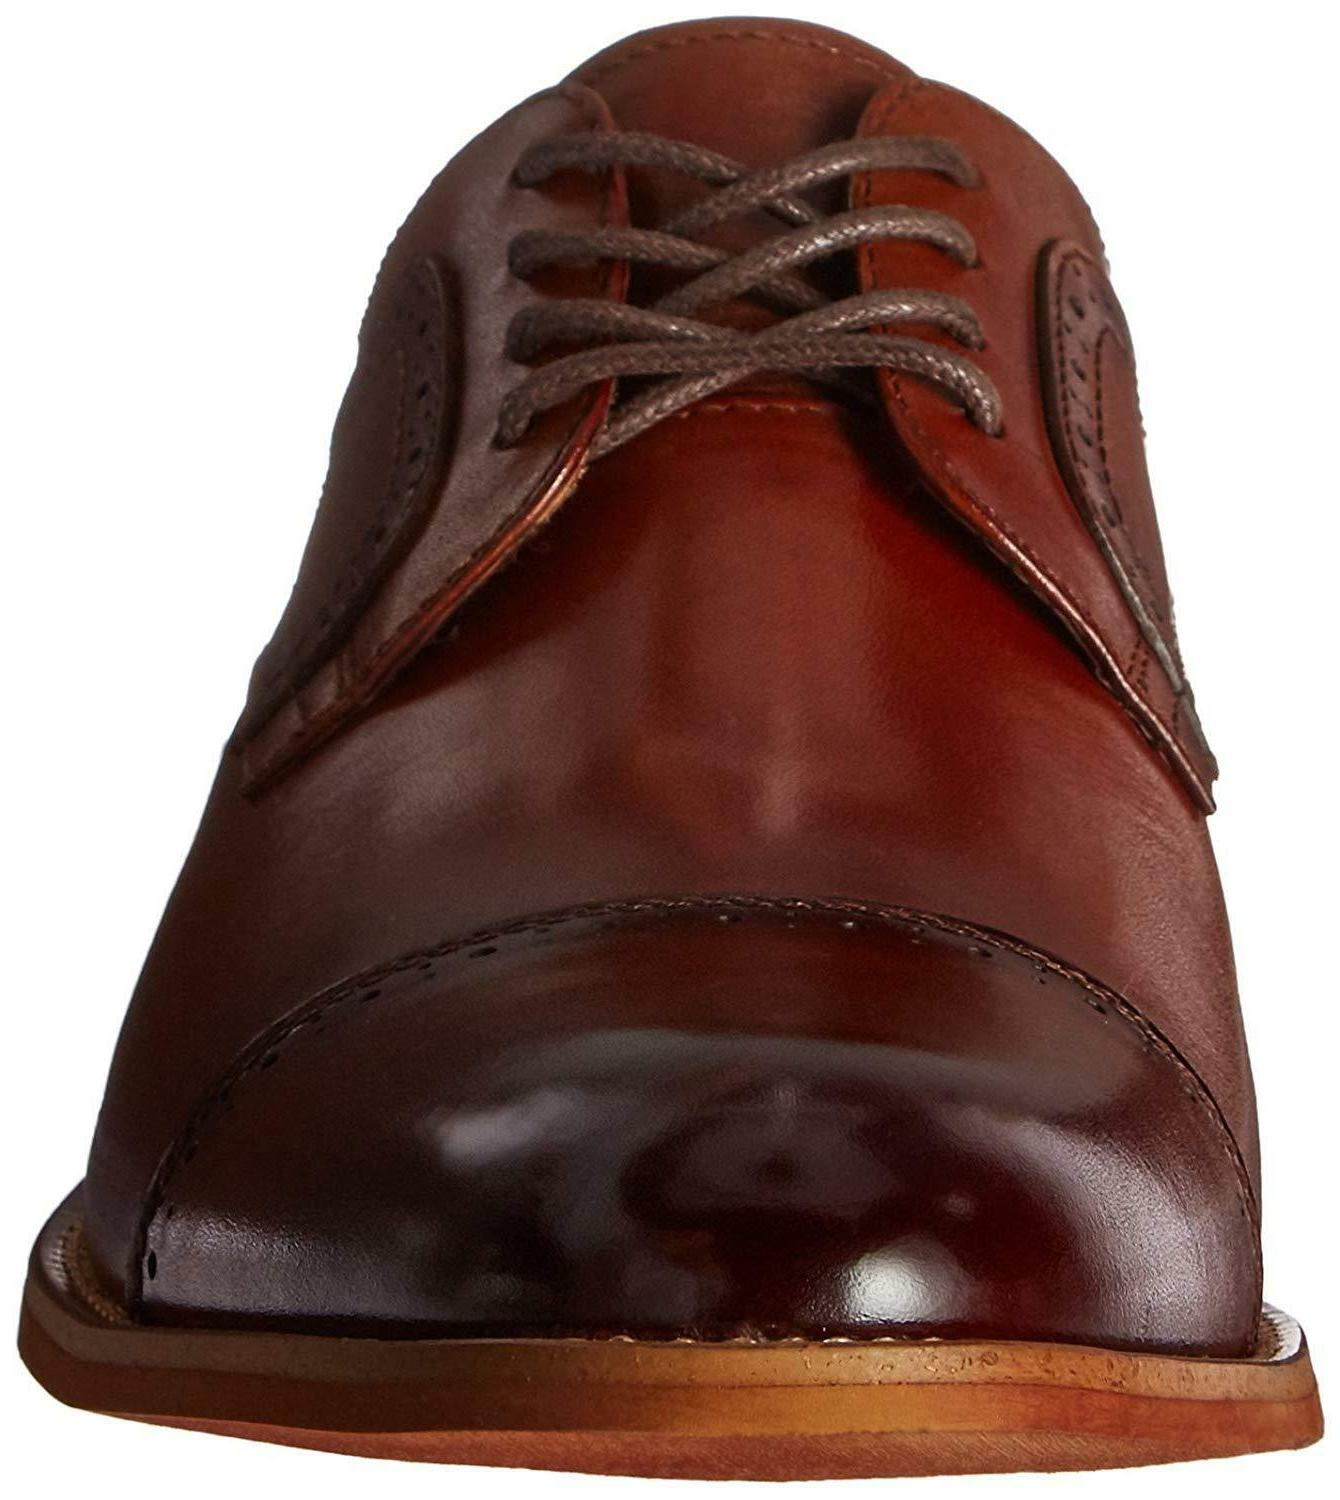 Stacy Adams Cap-Toe Lace-up